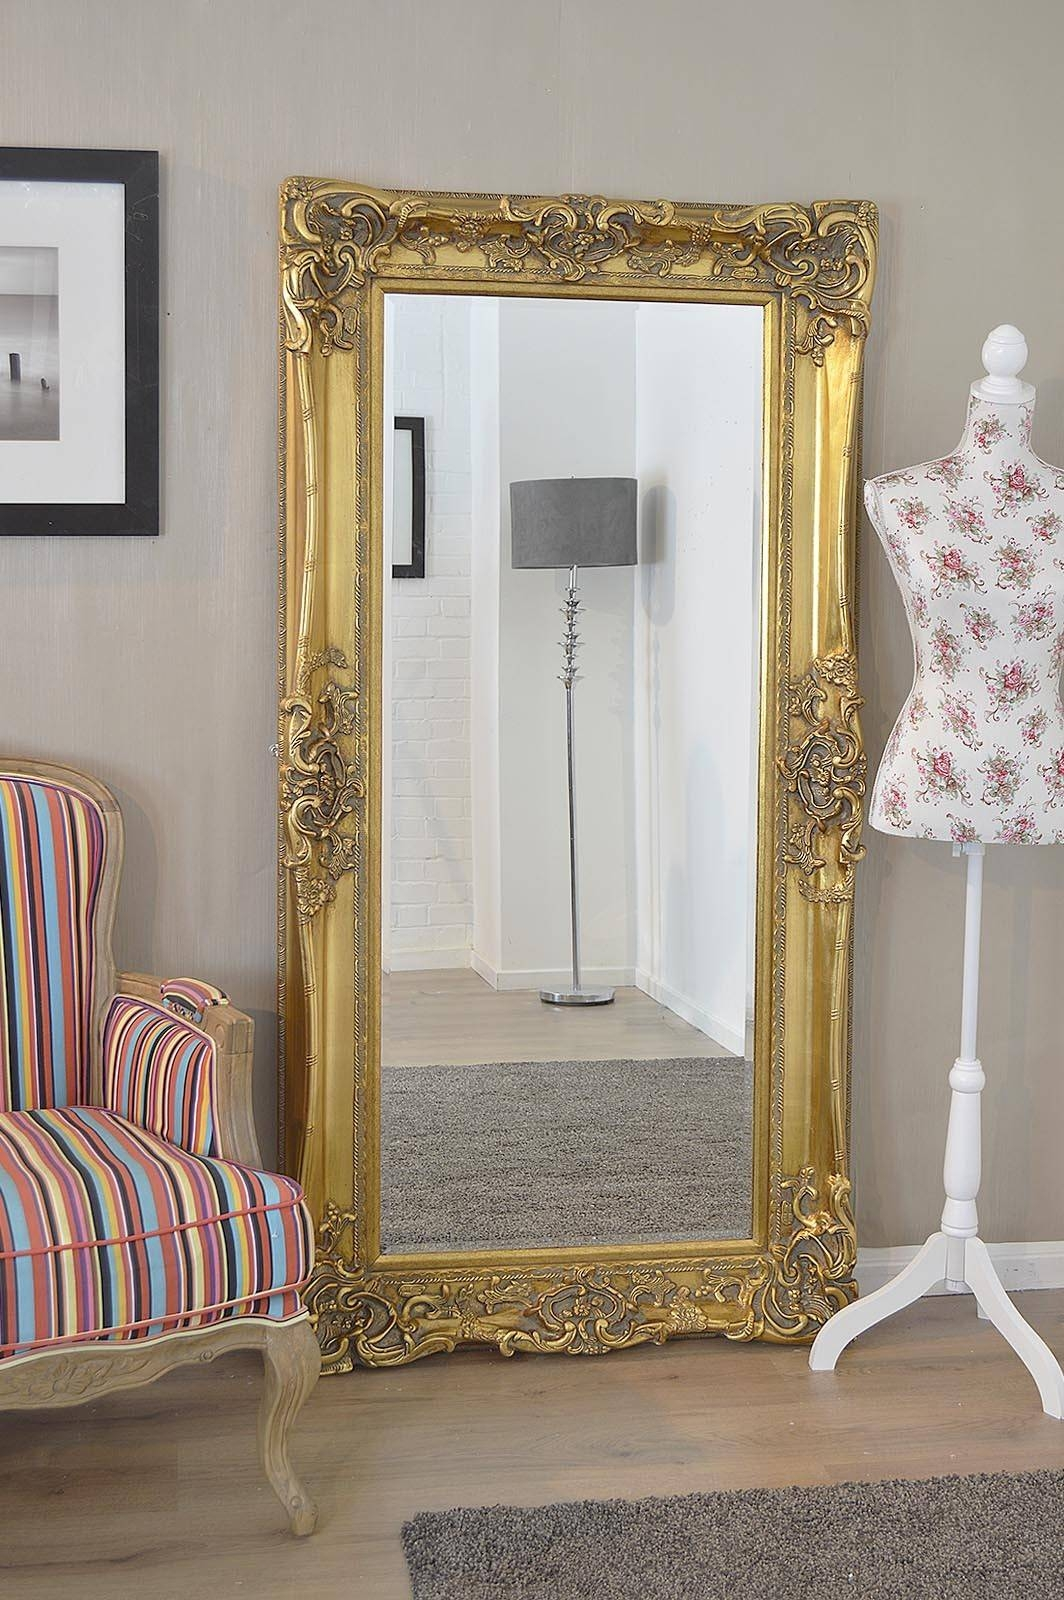 Magnificent Vintage Stand Up Mirror With Frameless Vintage Mirror For Big Vintage Mirrors (View 18 of 25)